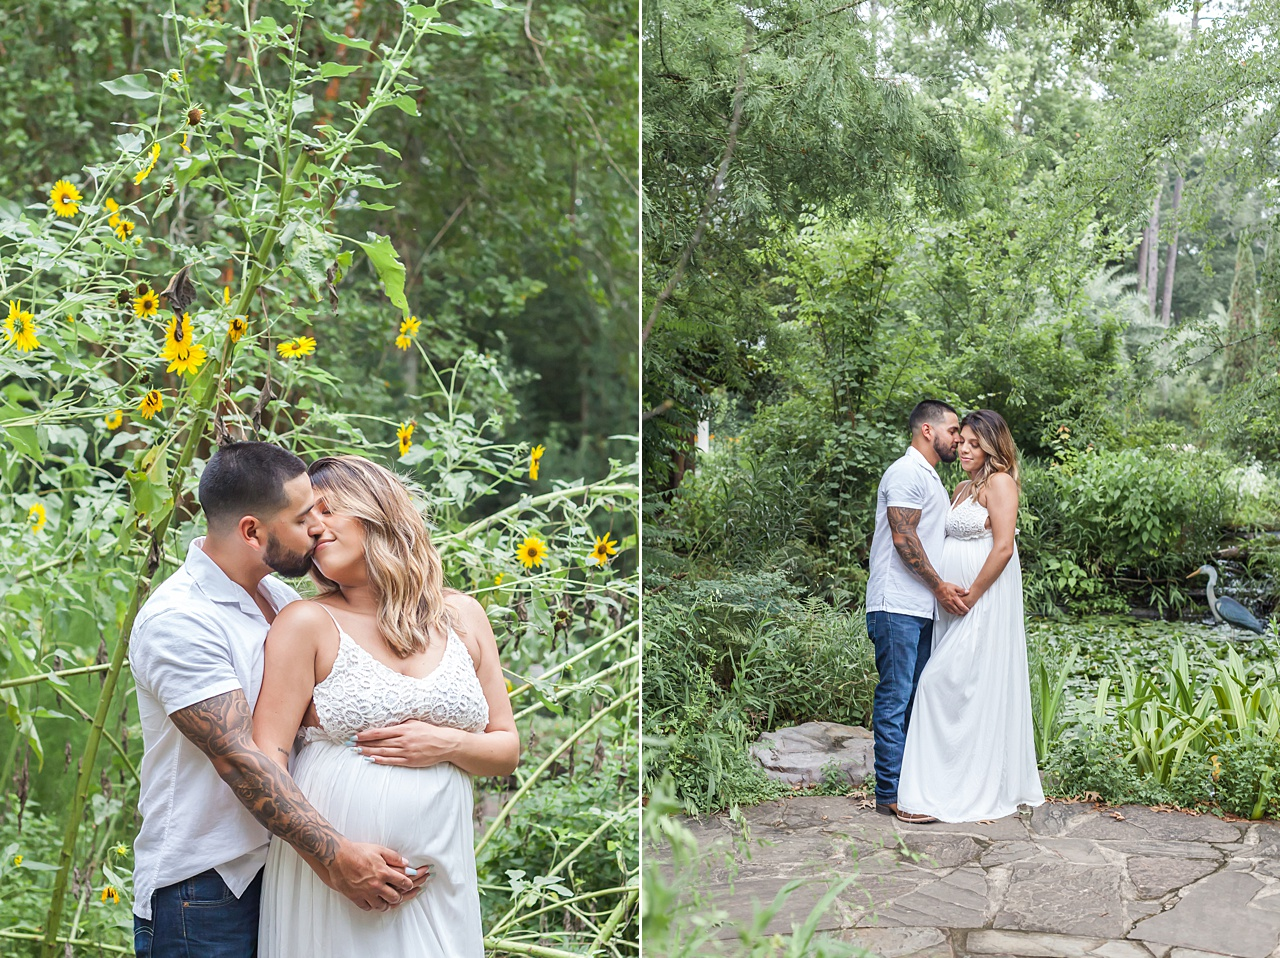 maternity photography session in garden setting by kristal bean photography